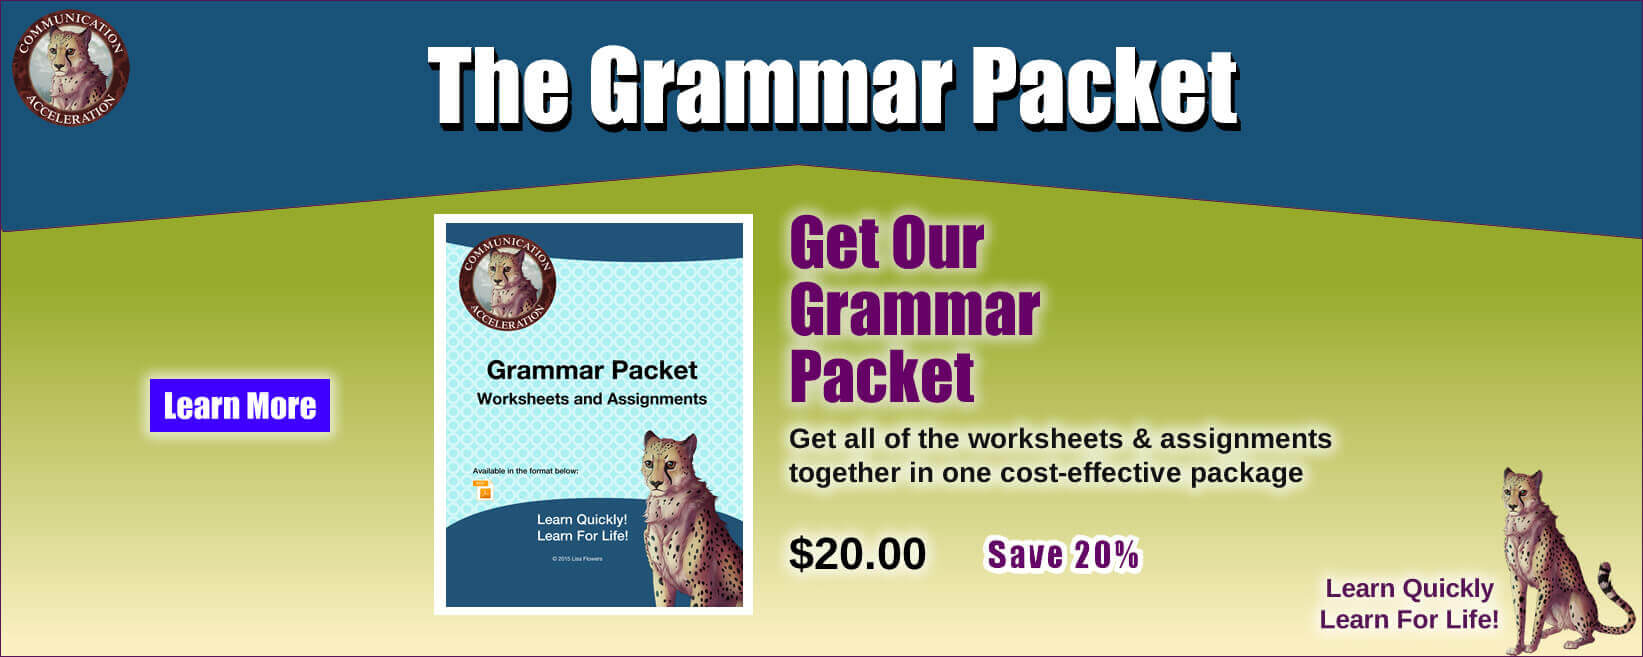 The Grammar Packet - Get all of the worksheets and assignments together in one cost-effective package